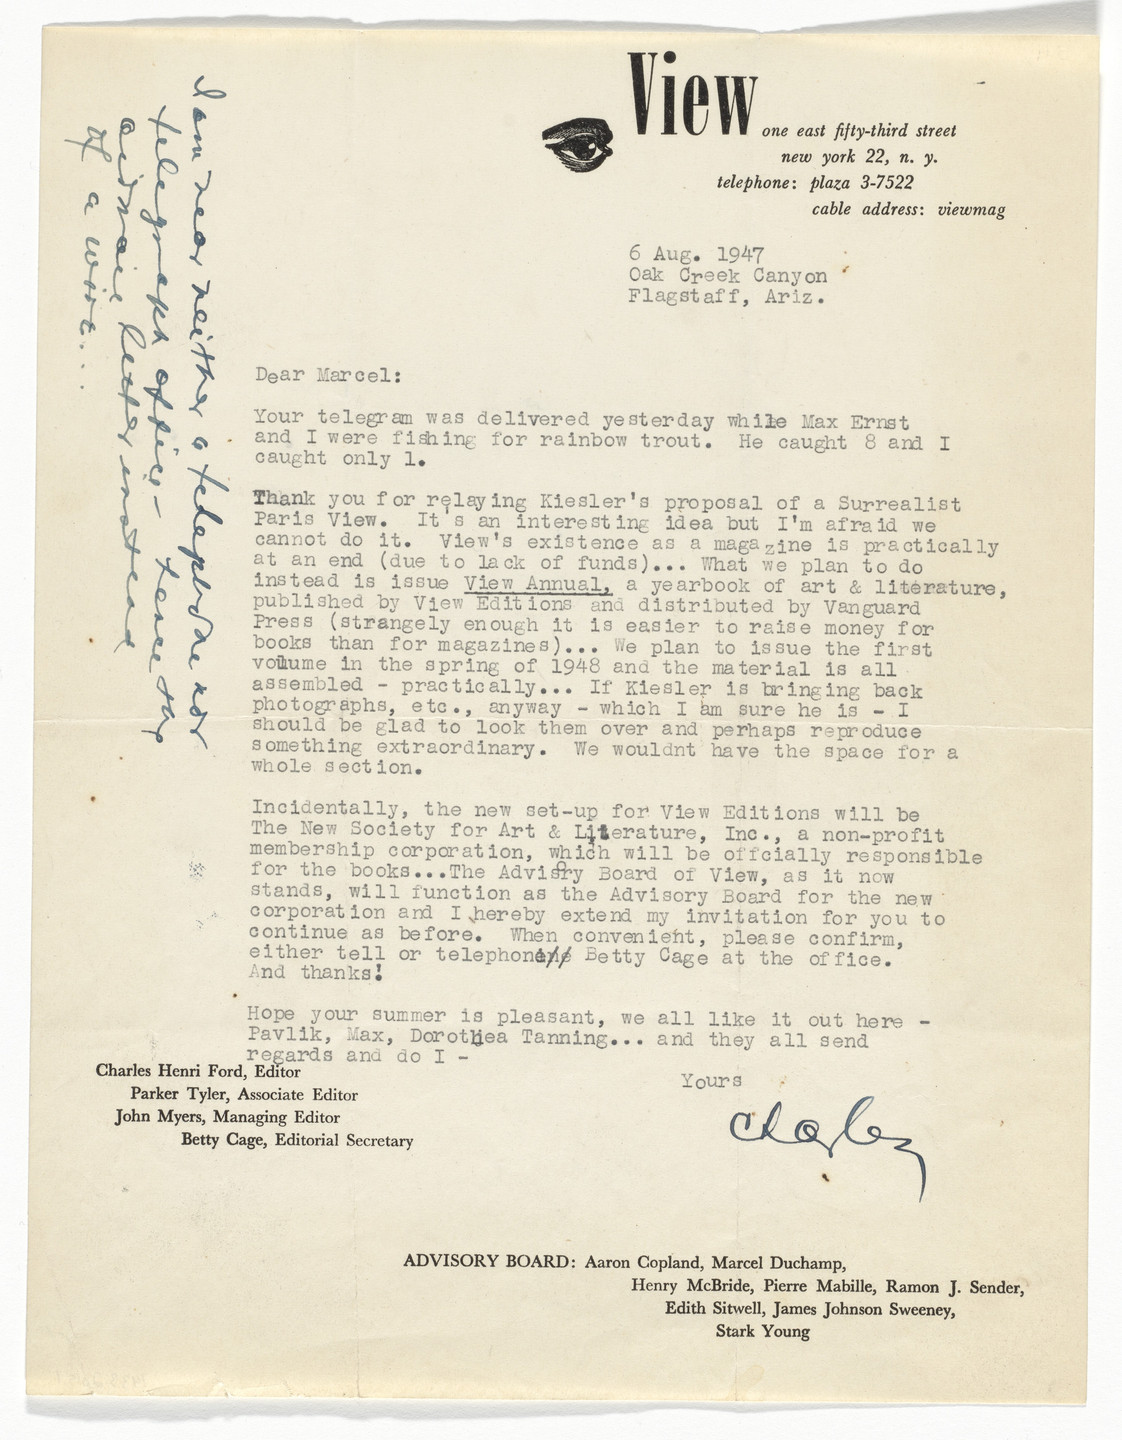 Unknown Designer. View Magazine Letterhead (Letter from Charles Henri Ford to Marcel Duchamp). 1947